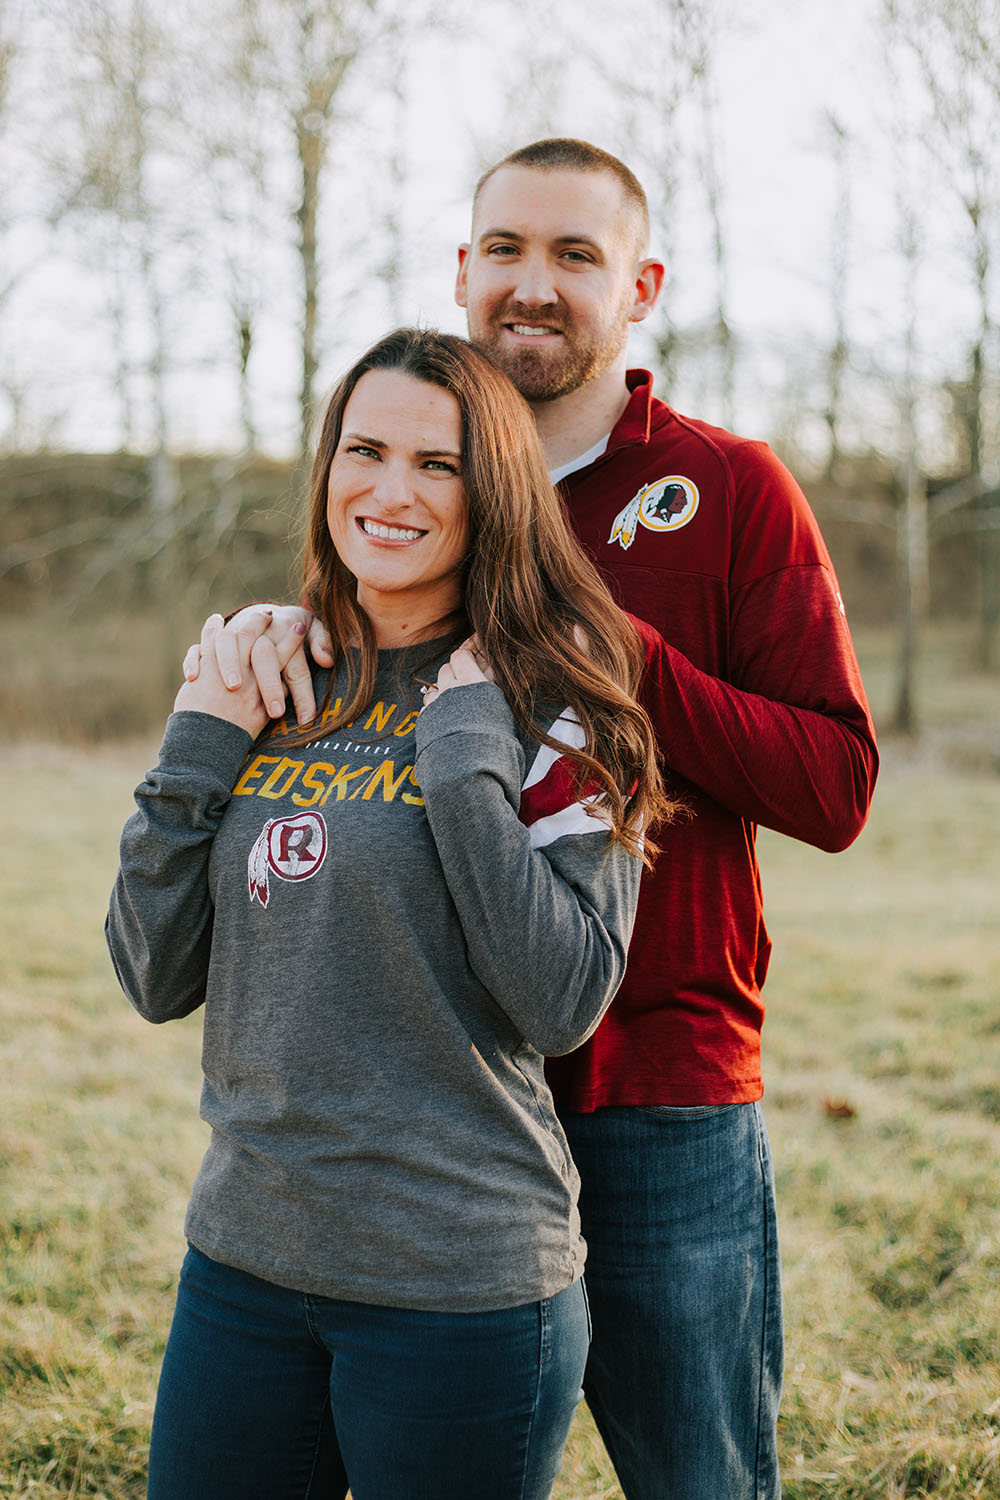 Shutter Up Studios | Wedding photographer in Crawfordsville Indiana | Golden hour engagement session with Redskins shirts